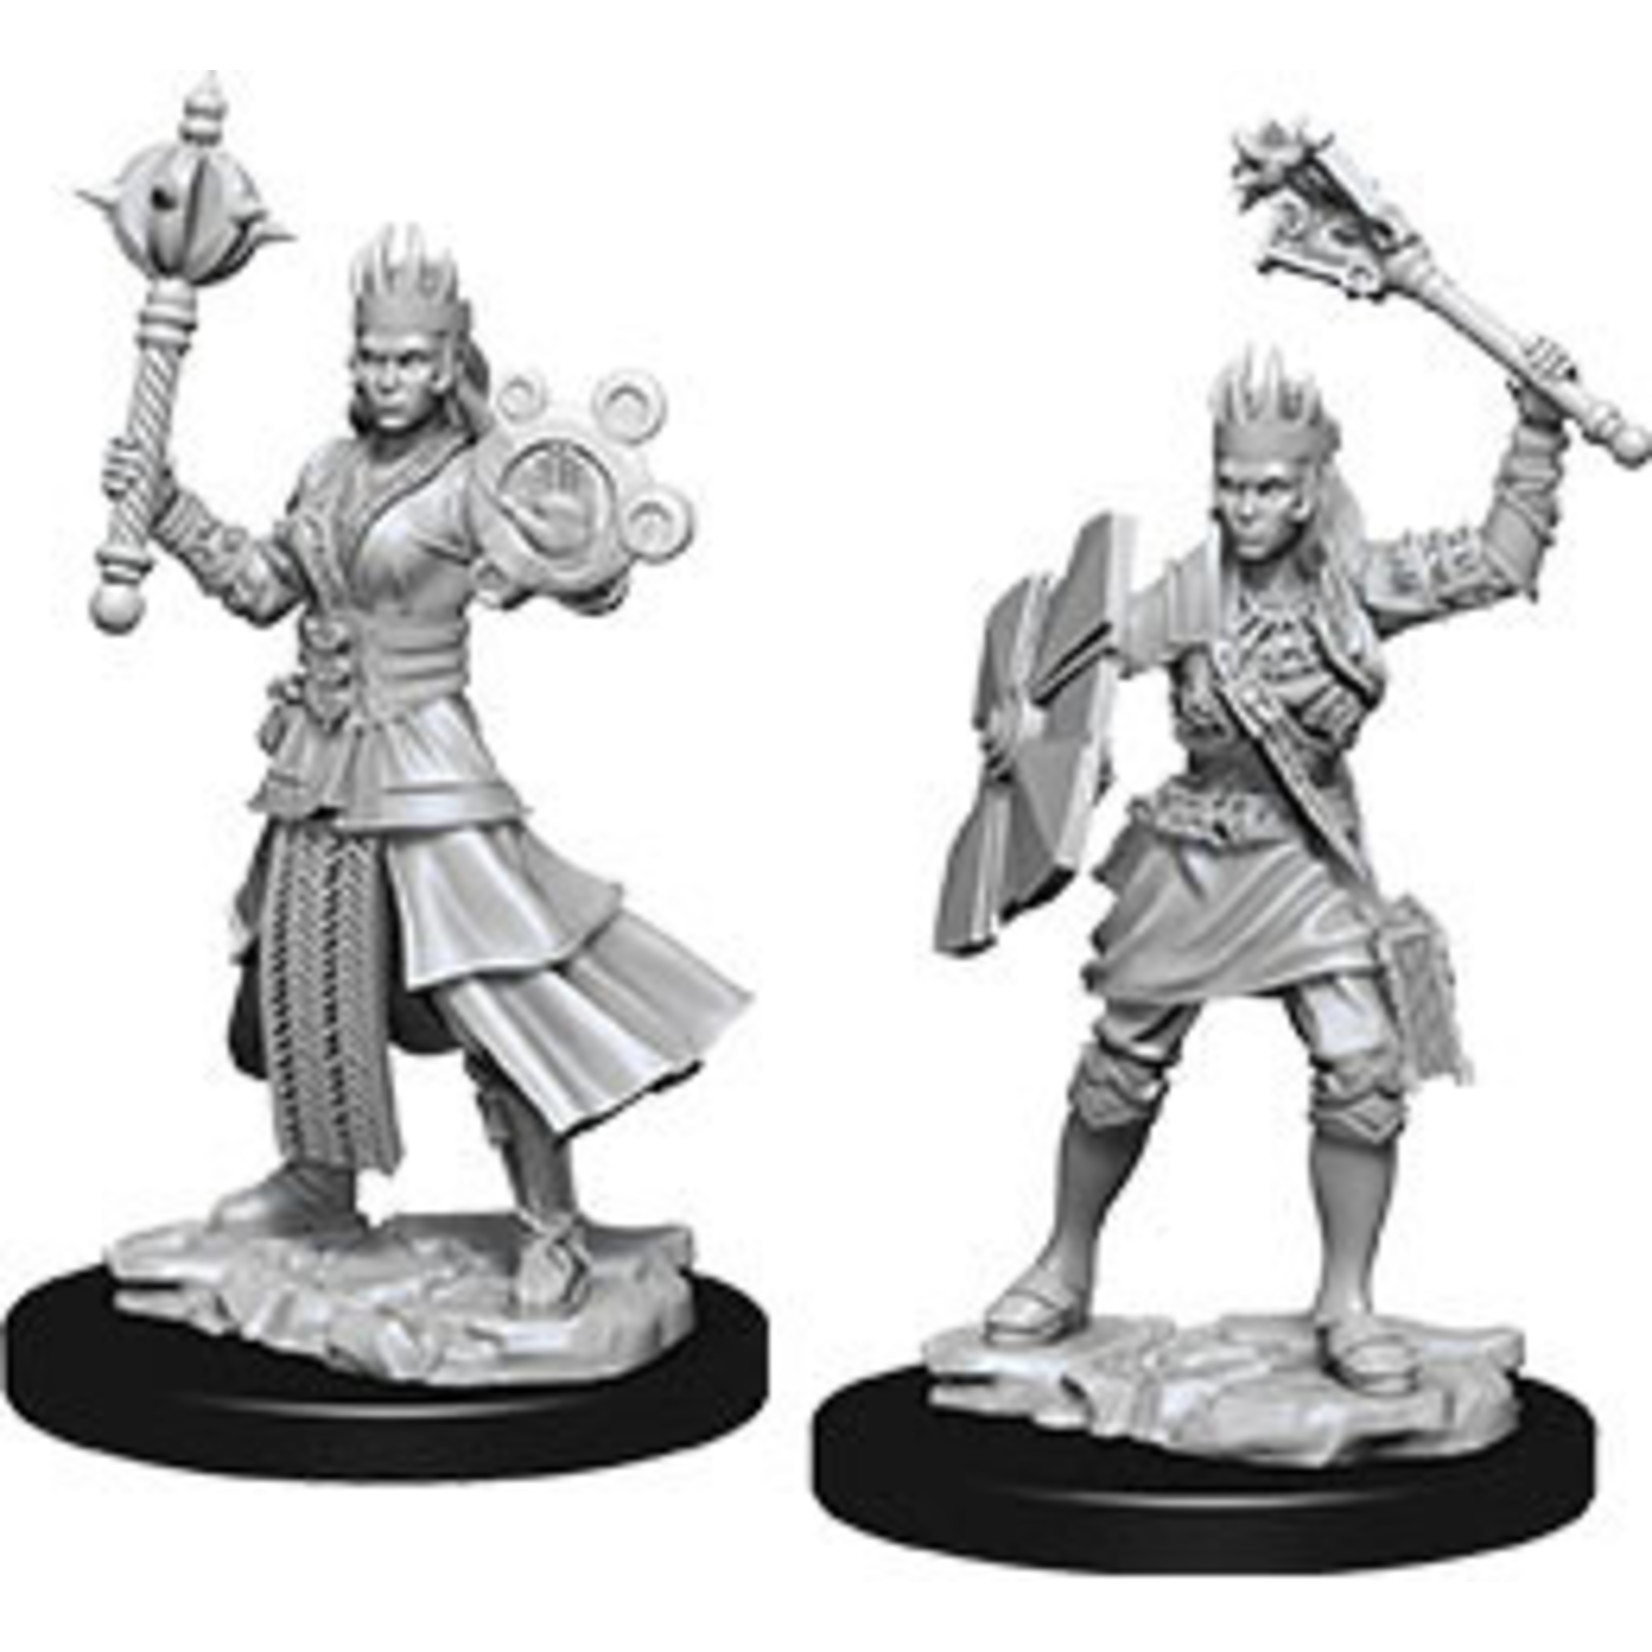 WizKids Dungeons & Dragons Nolzur's Marvelous Miniatures: Female Human Cleric